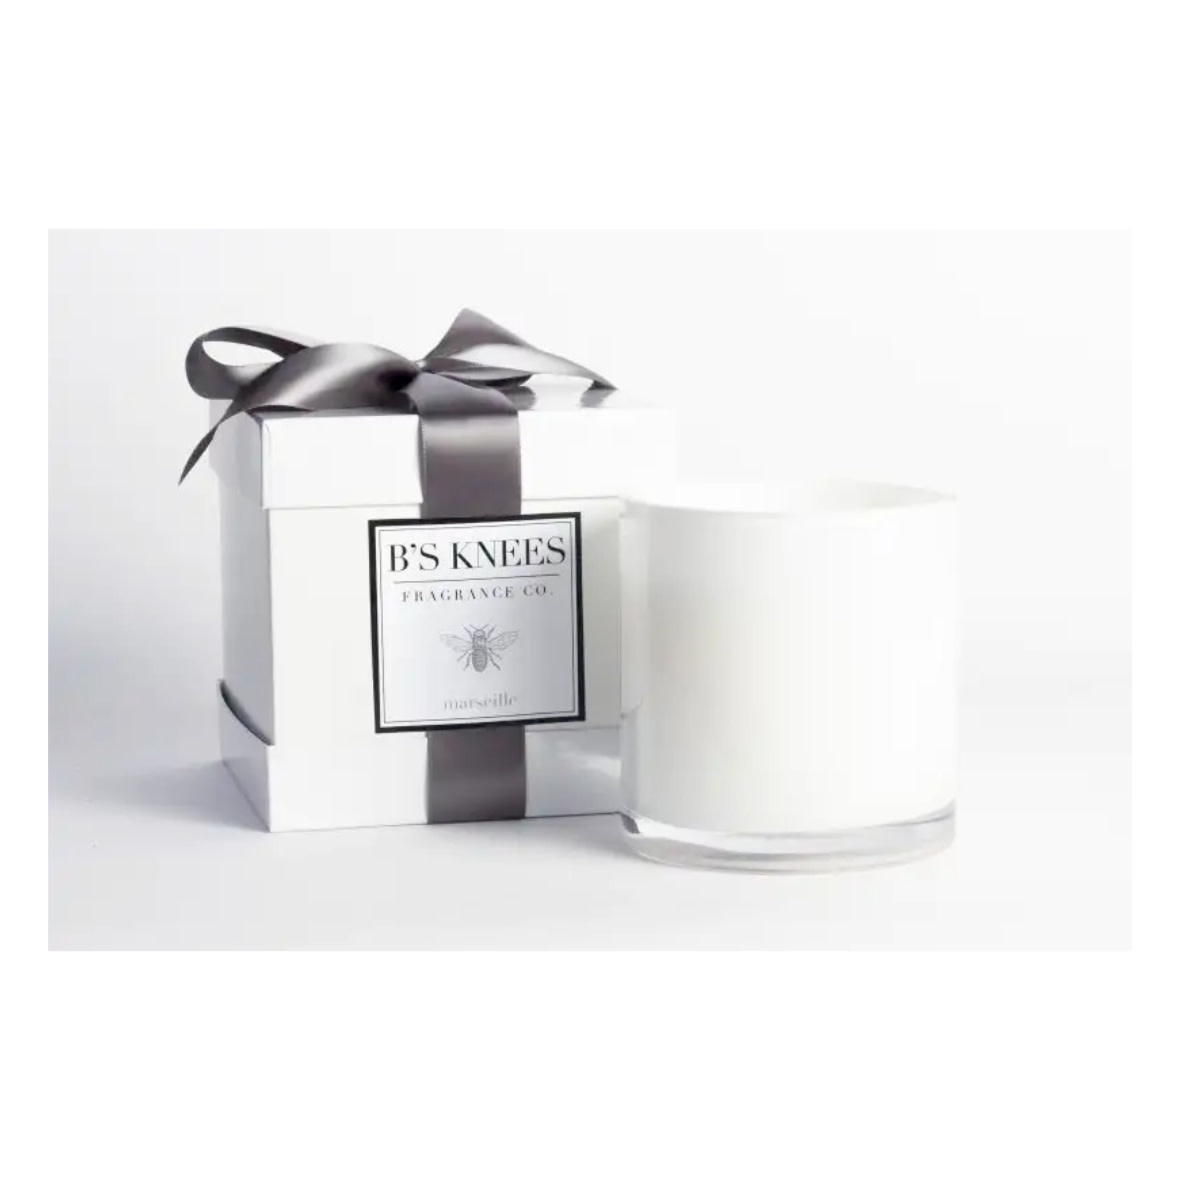 B's Knees Fragrance Co. B's Knees 3 Wick Candle White